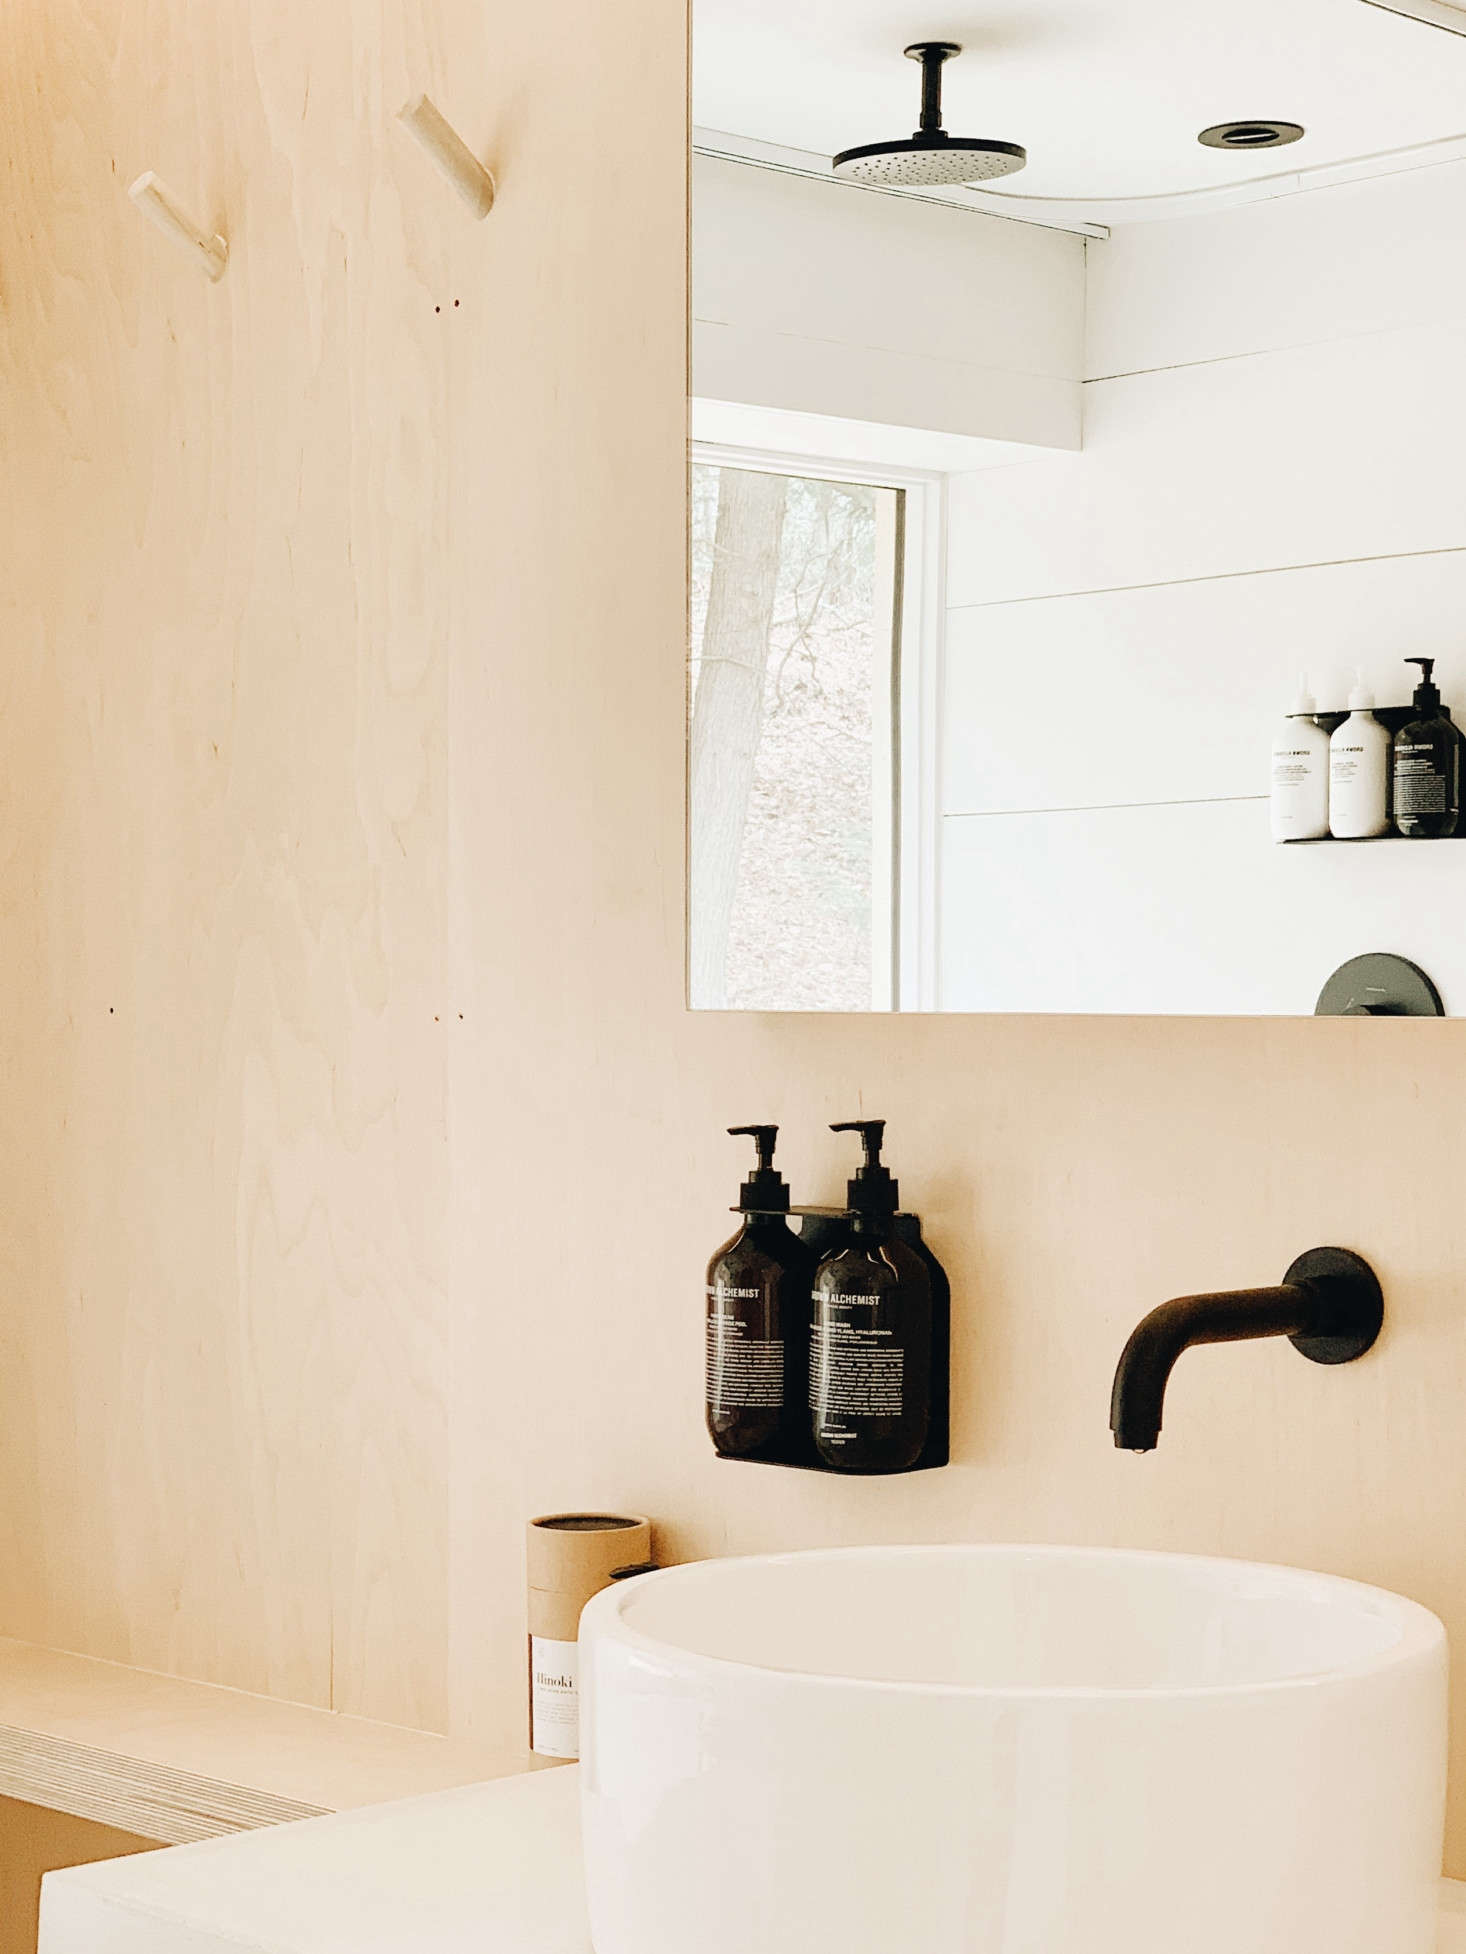 The house is stocked with Hand Soap and other toiletries by Grown Alchemist, neatly hung on black metal Soap Dispenser Holders from DesignStuff of Australia. (Amazon offers the similar Ceremony Home  Wall-Mount Soap Dispenser with Glass Bottle.)